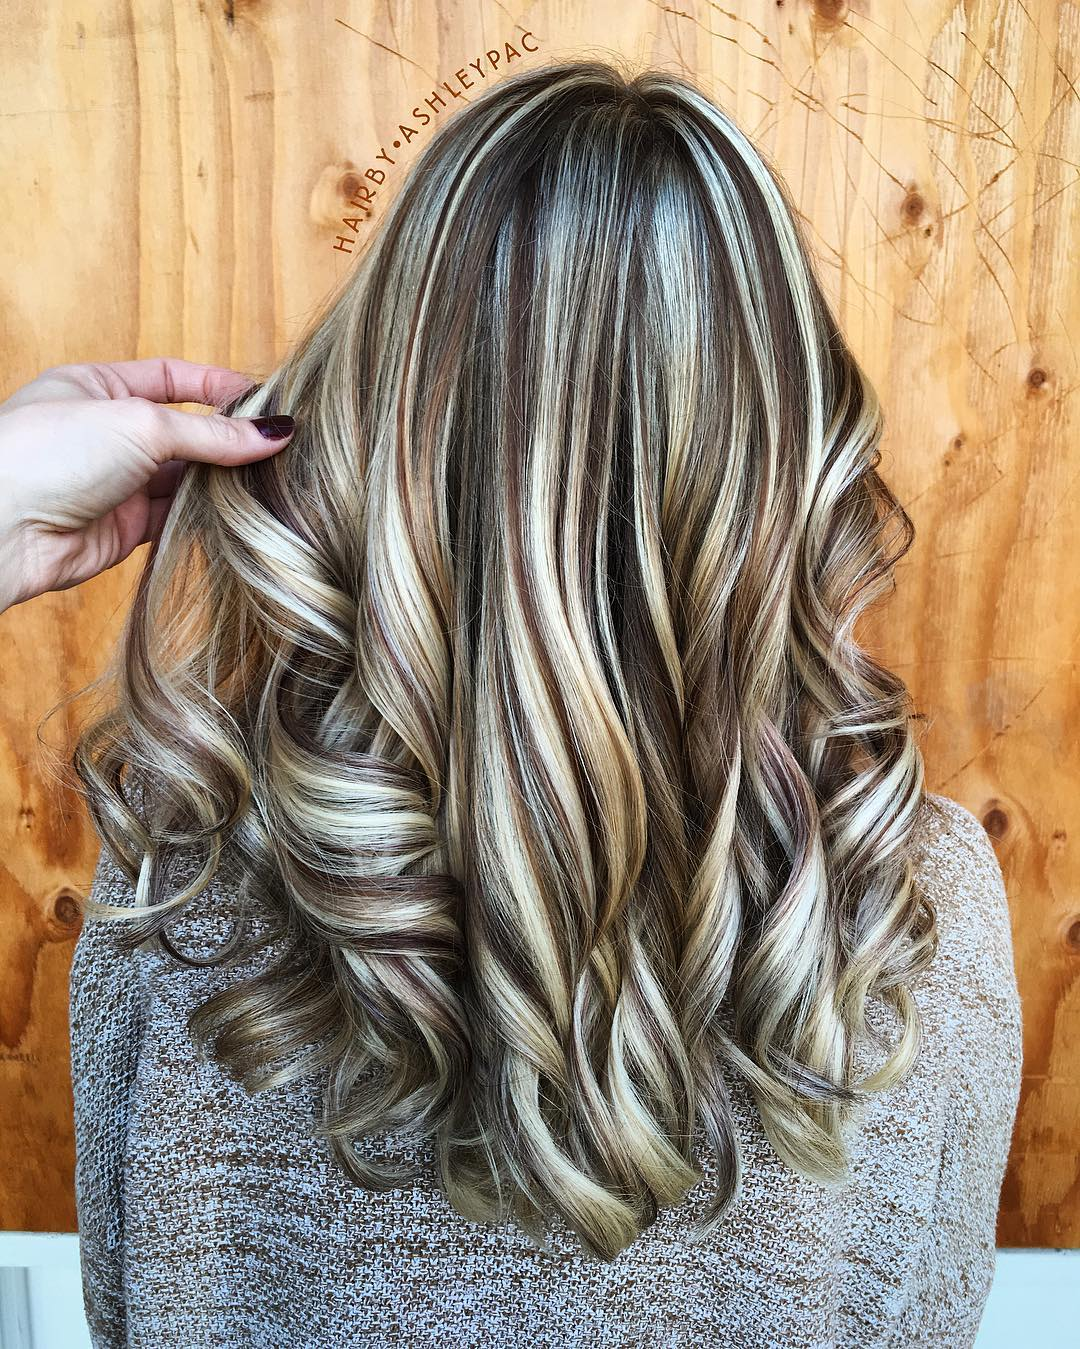 Blonde Highlights For Light Brown Hair & 50 Light Brown Hair Color Ideas with Highlights and Lowlights